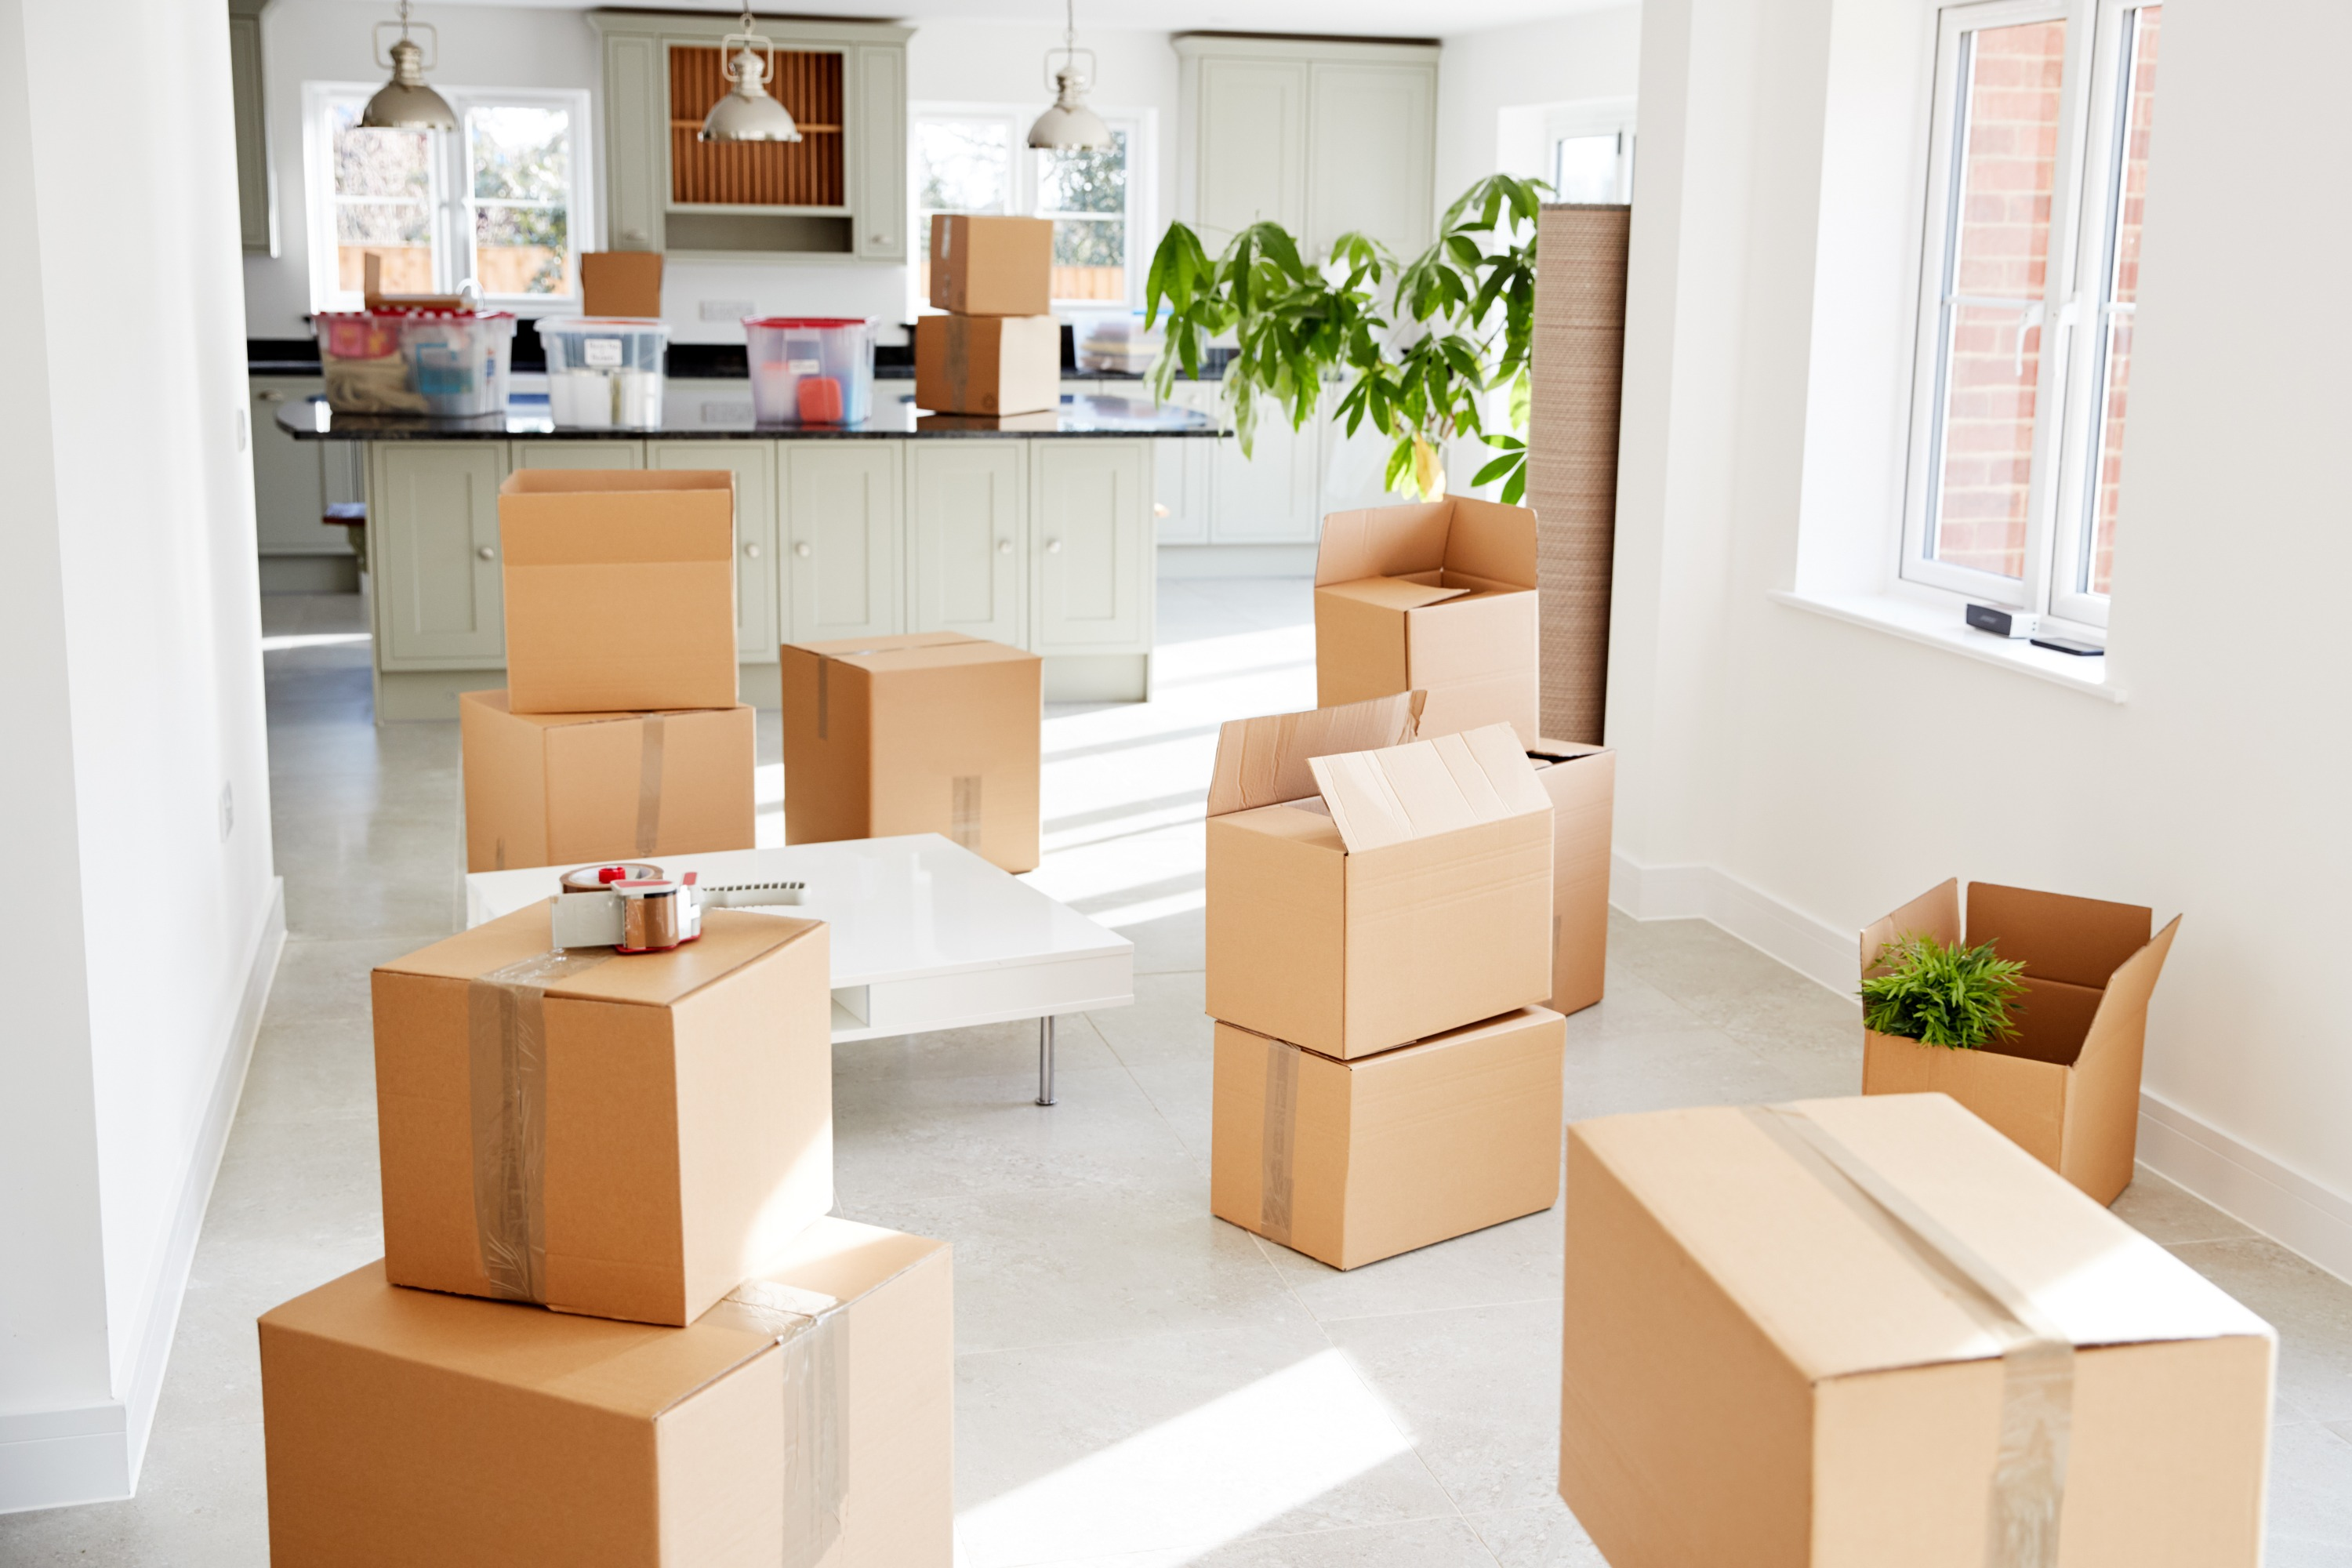 Moving boxes near a kitchen of a home with white walls, white floor, and bright windows.